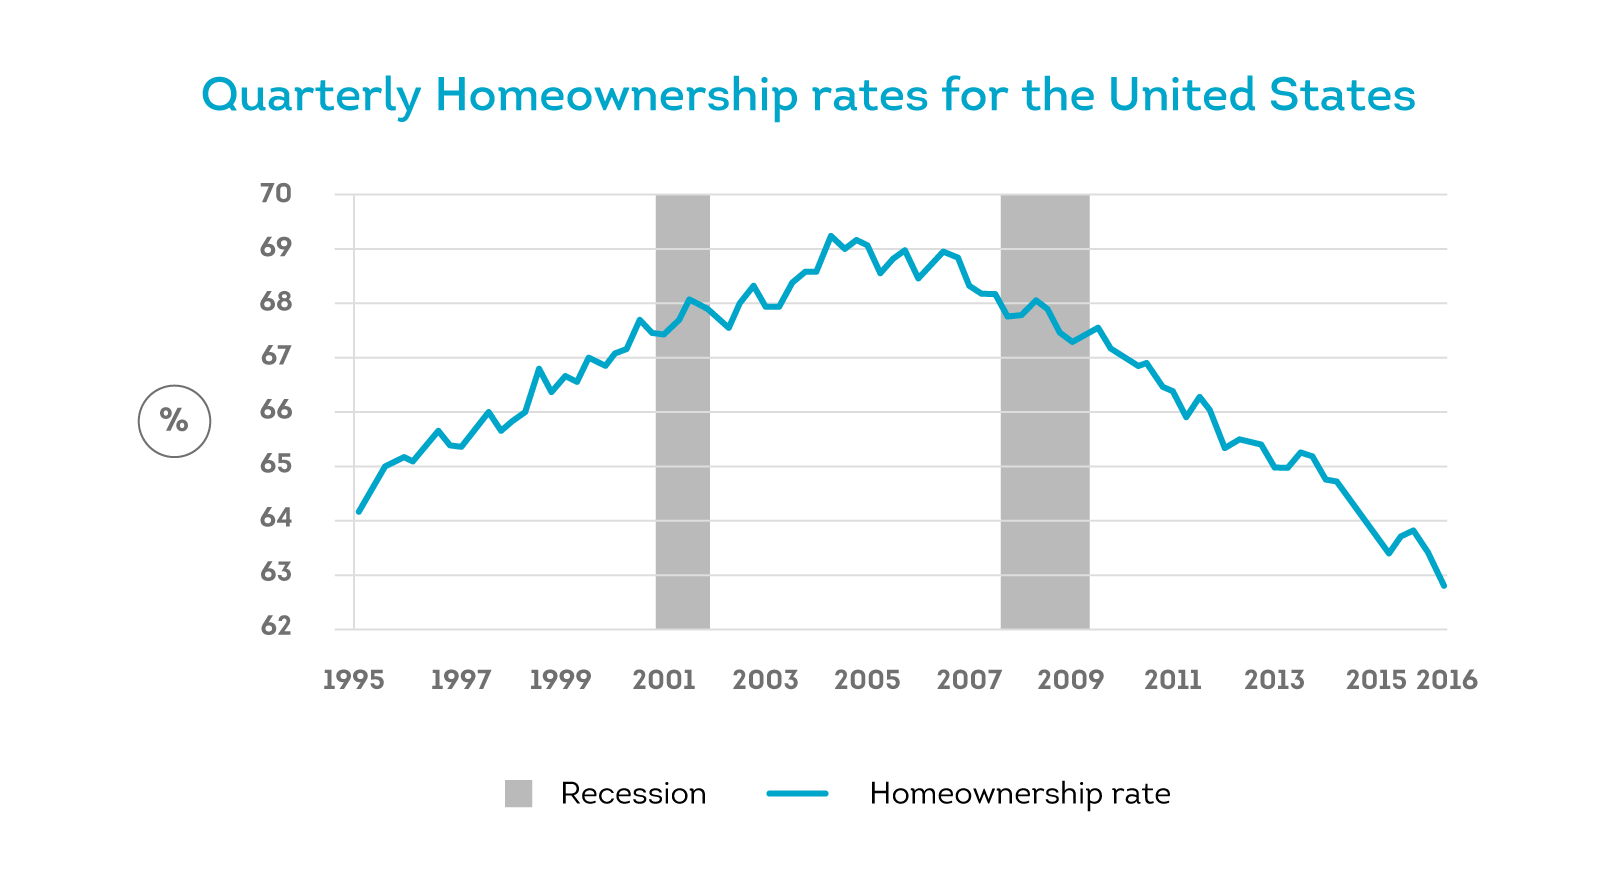 More renters are in the market driving homeownership to a 50-year low